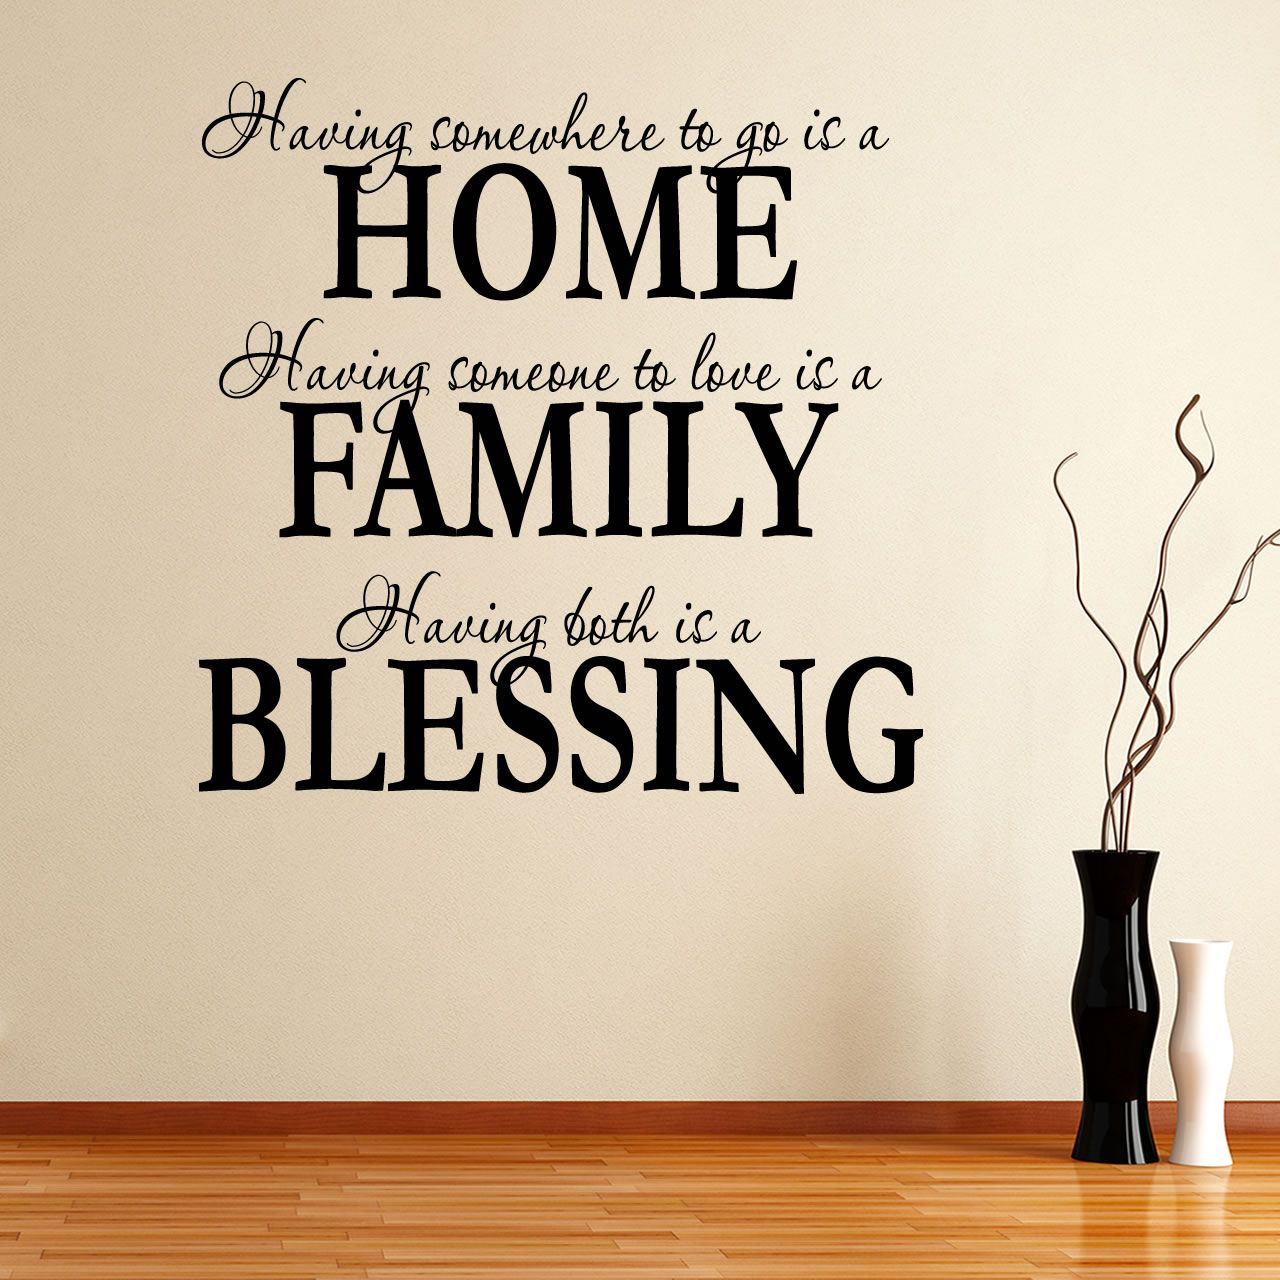 blessings quotes Google Search Blessing Quotes I like